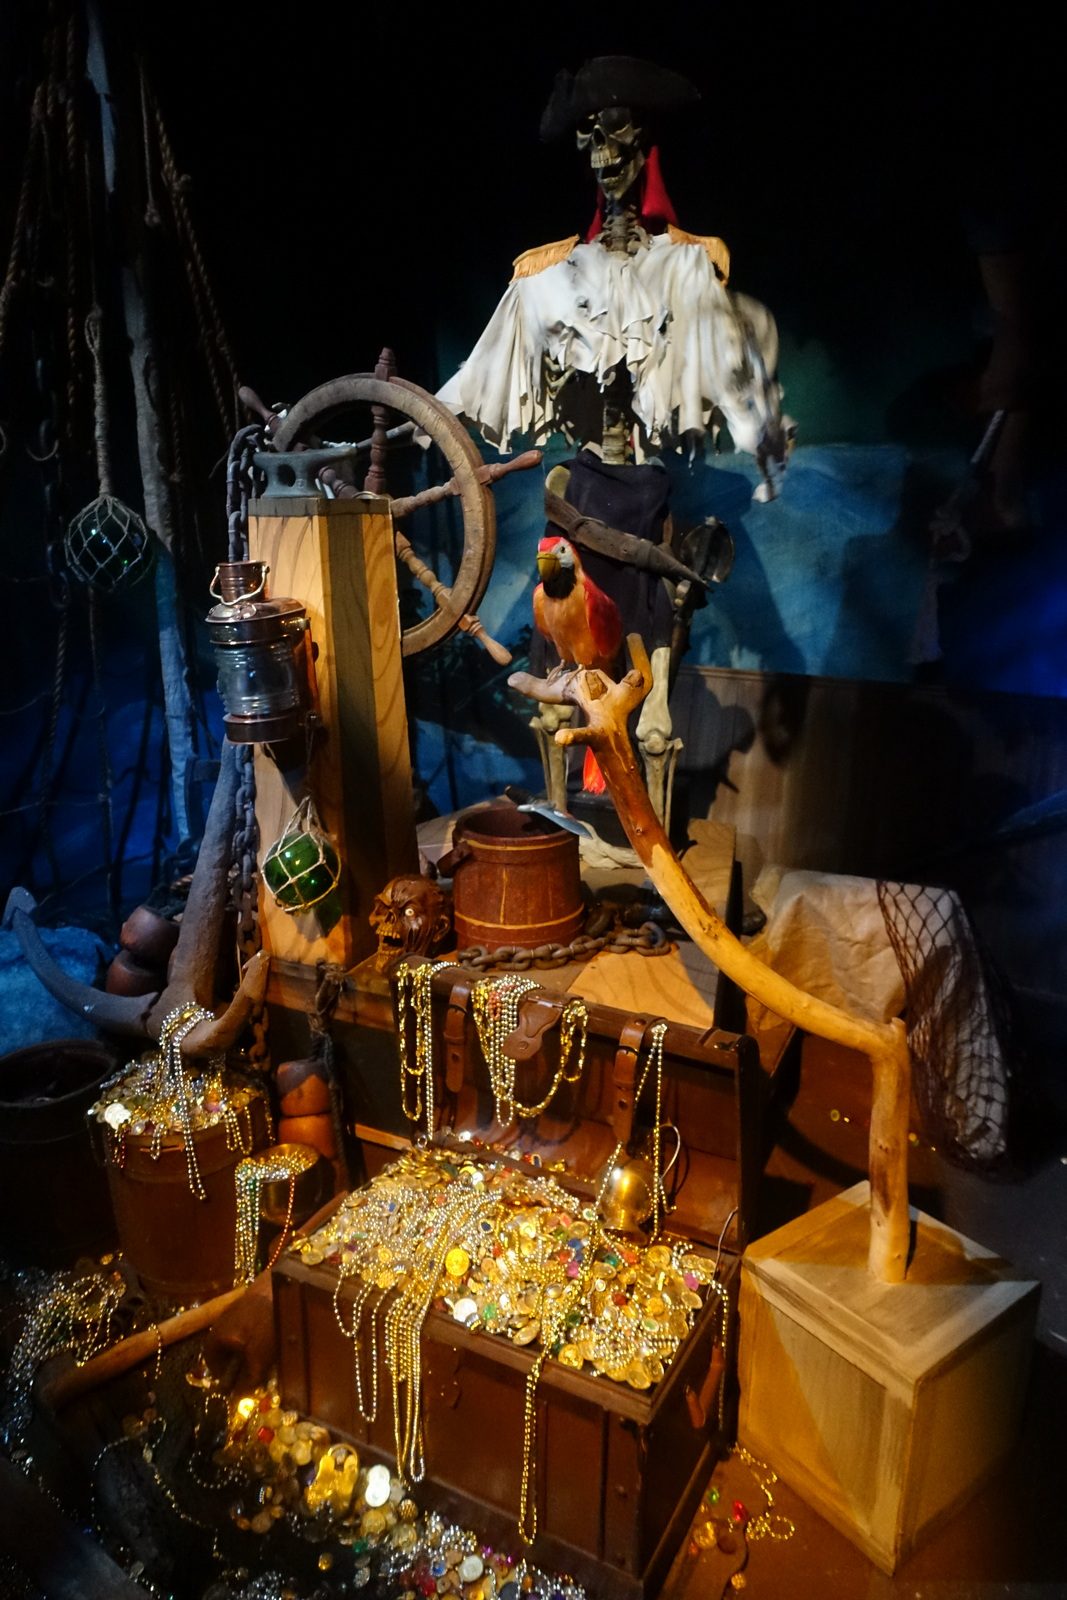 This animatronic pirate tells the tale of the founding of the hotel, and the surprises that await you ahead!